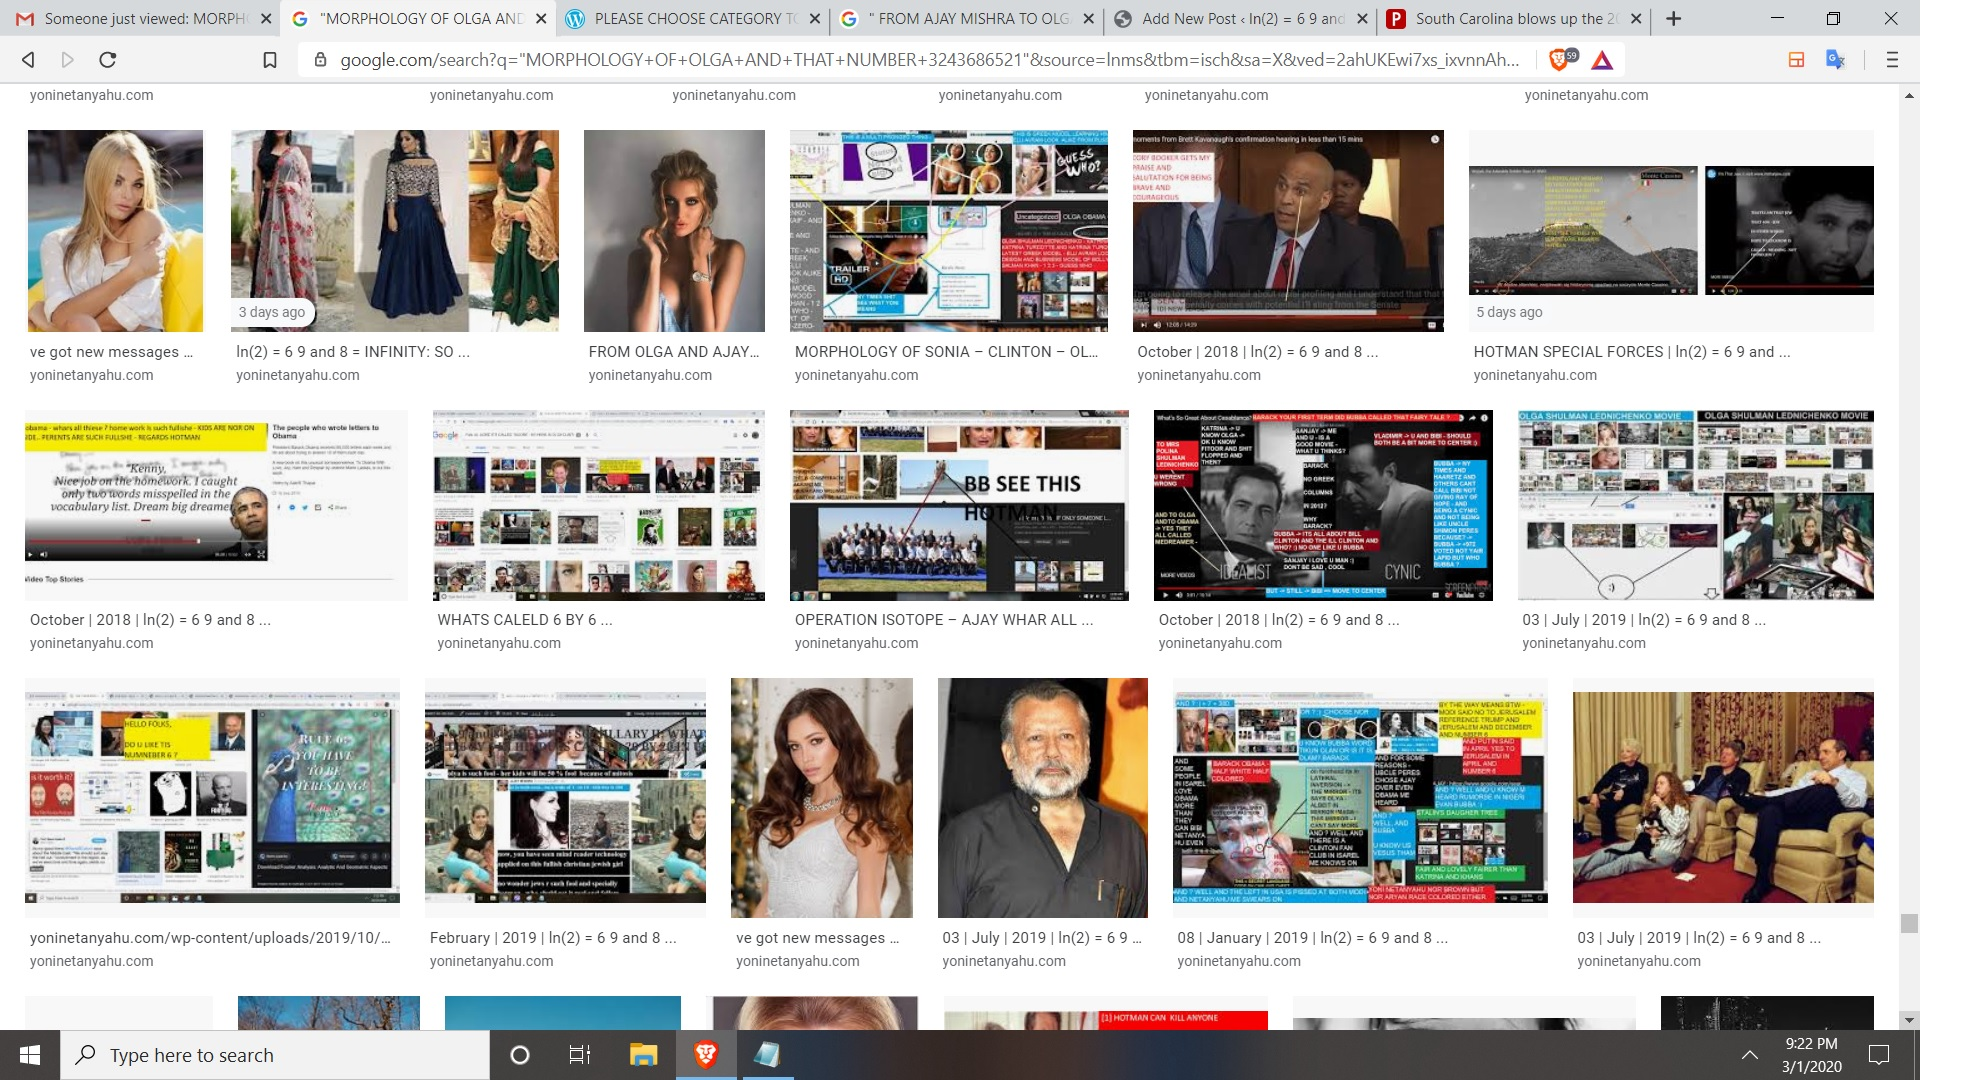 i mean u know - isareli and usa numbers are 9 digits but in hidu there is 1 10 dogts lie o to 10 not 1t o 9 but 1 to 10 reagads sanjay - morphology of olag and 324368654221 and 324368521